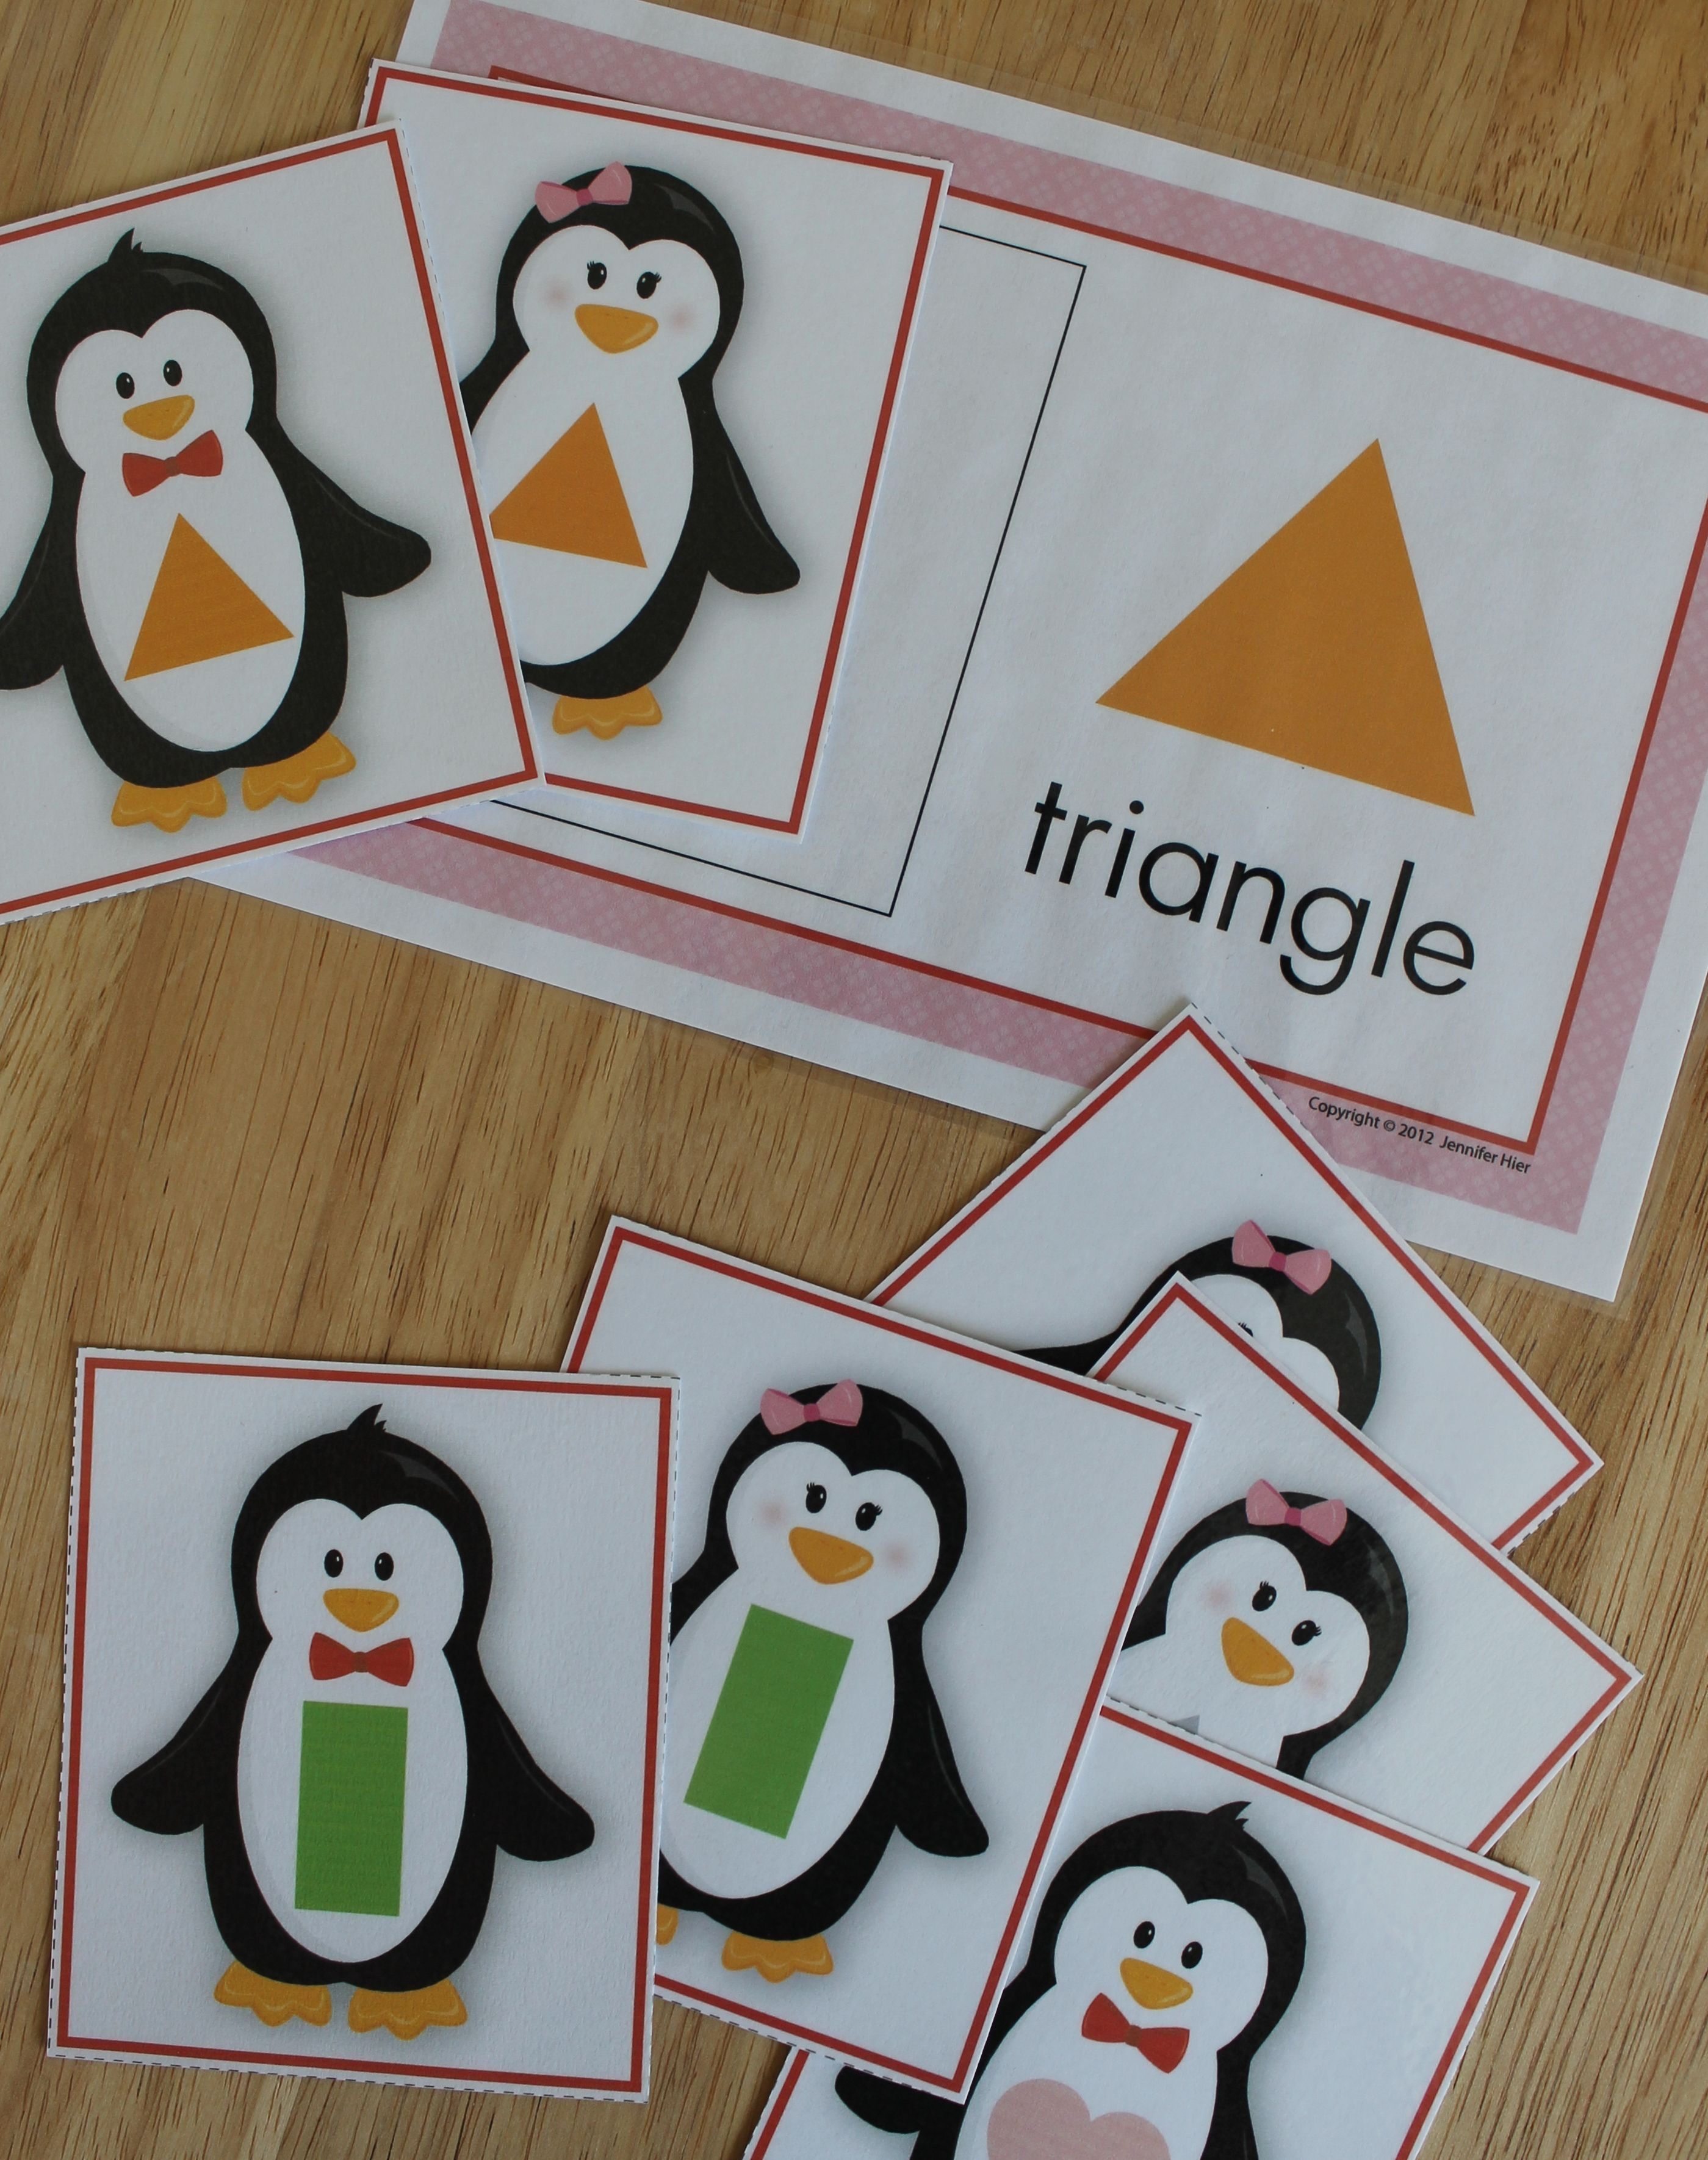 Penguin Shape Sorting Activity For Preschool And Pre K And Tot School Teach Kids How To